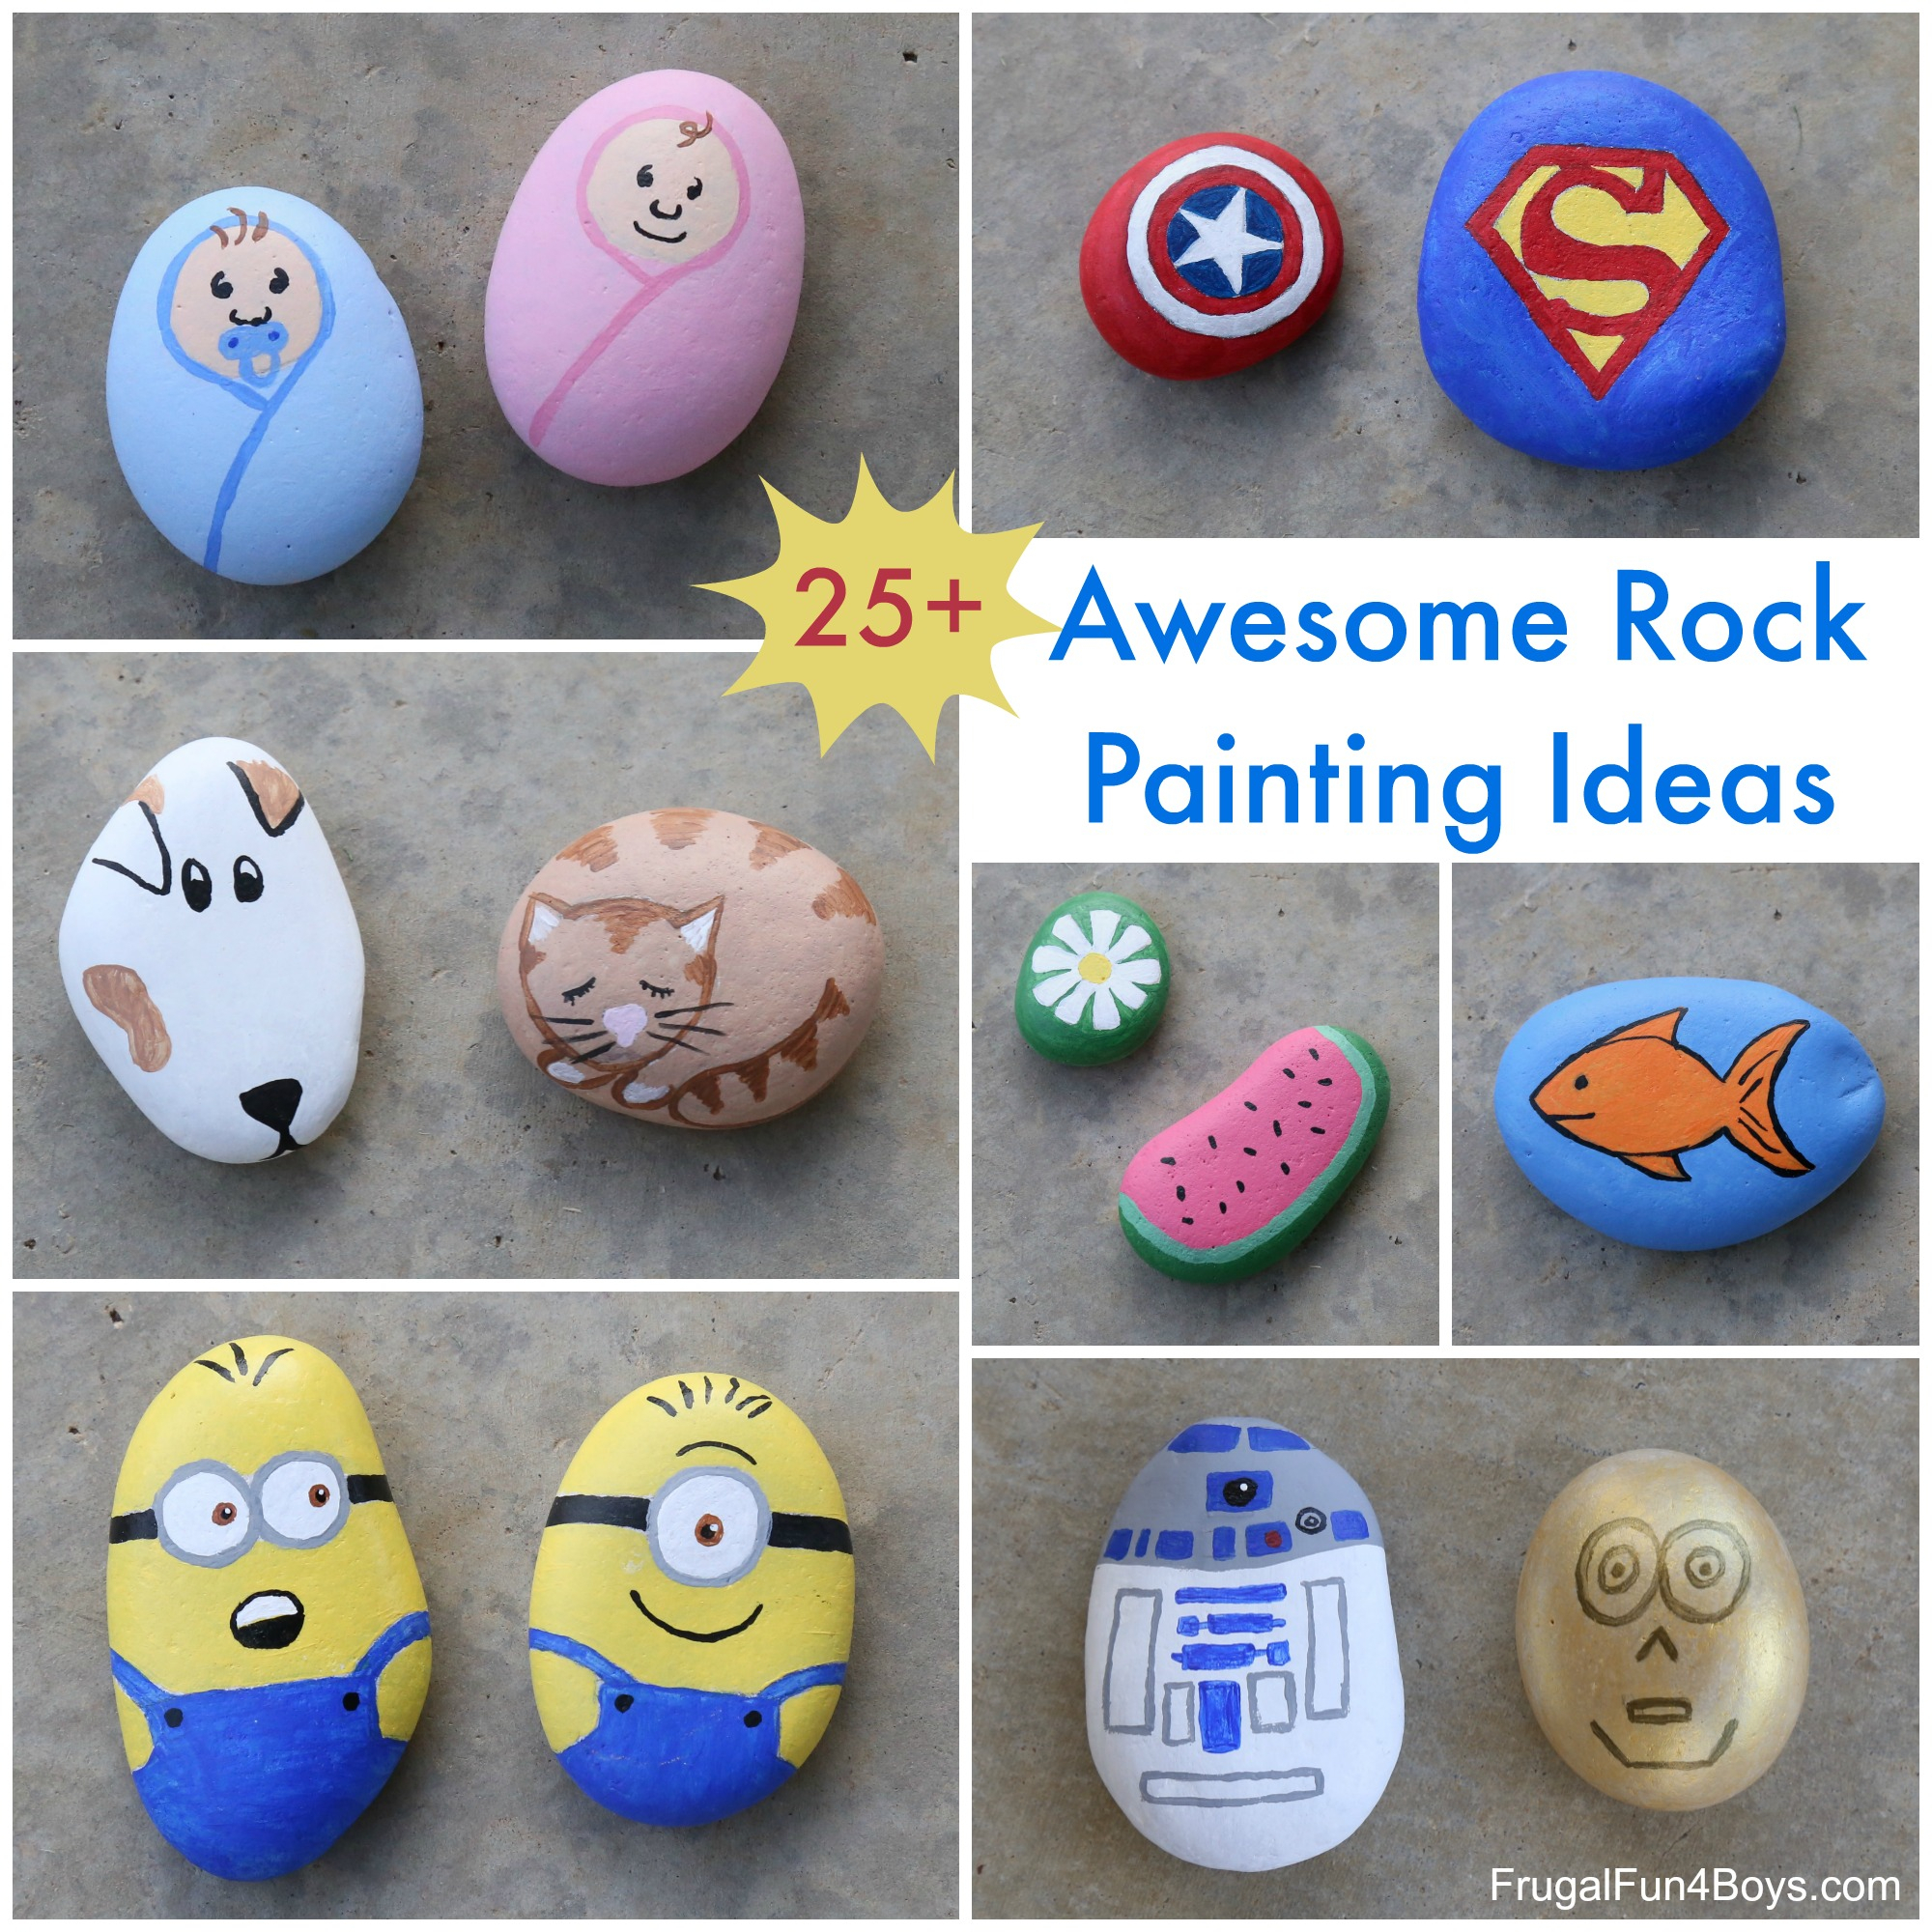 10 Fabulous Rock Painting Ideas For Kids 25 awesome rock painting ideas frugal fun for boys and girls 1 2020